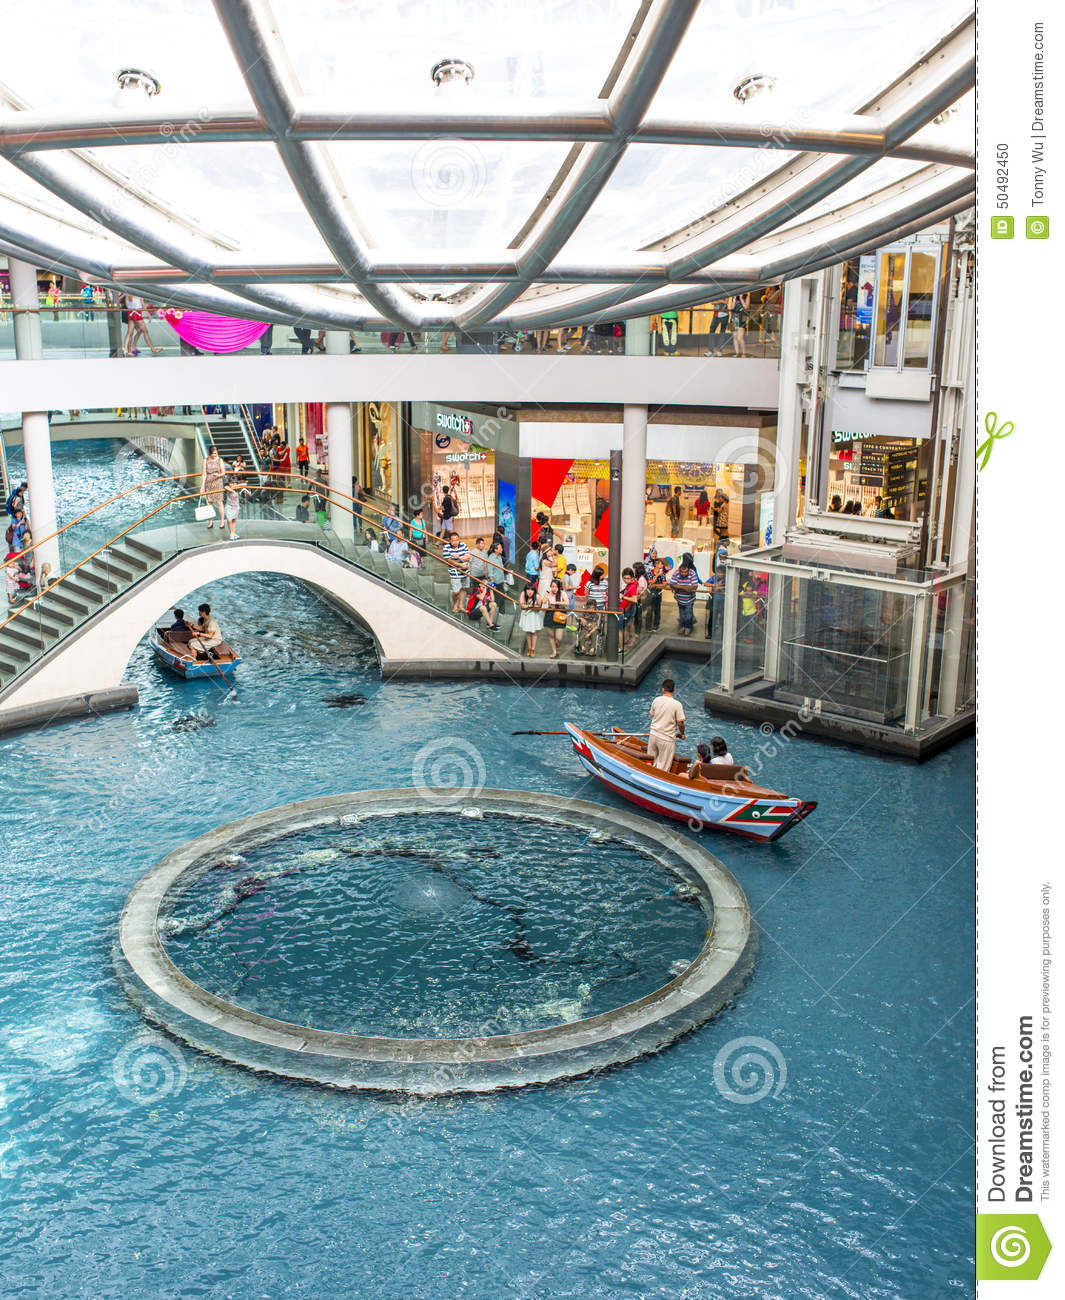 ... Bay Sands integrated shopping mall with river gondola in Singapore